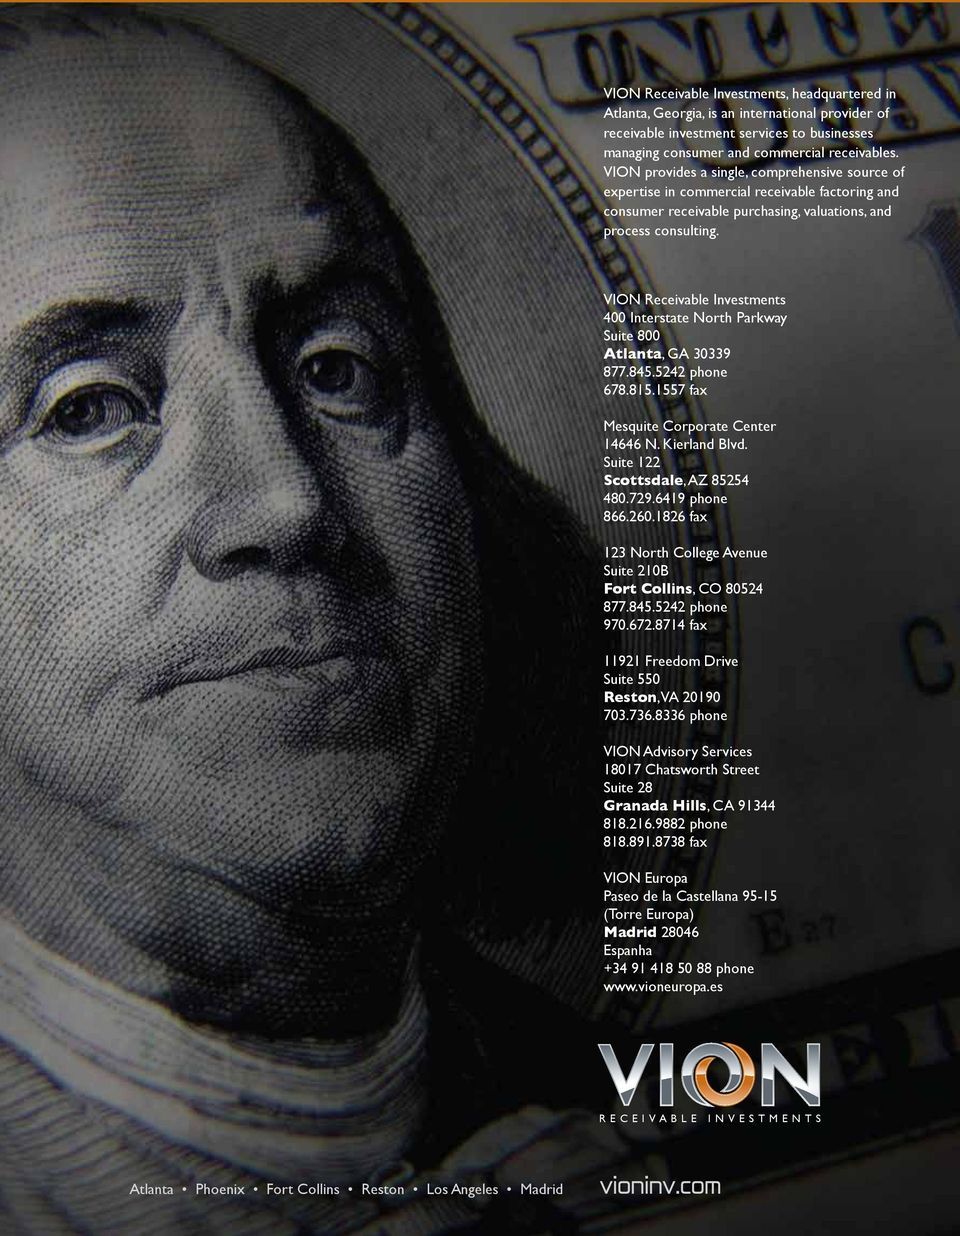 VION Receivable Investments 400 Interstate North Parkway Suite 800 Atlanta, GA 30339 877.845.5242 phone 678.815.1557 fax Mesquite Corporate Center 14646 N. Kierland Blvd.